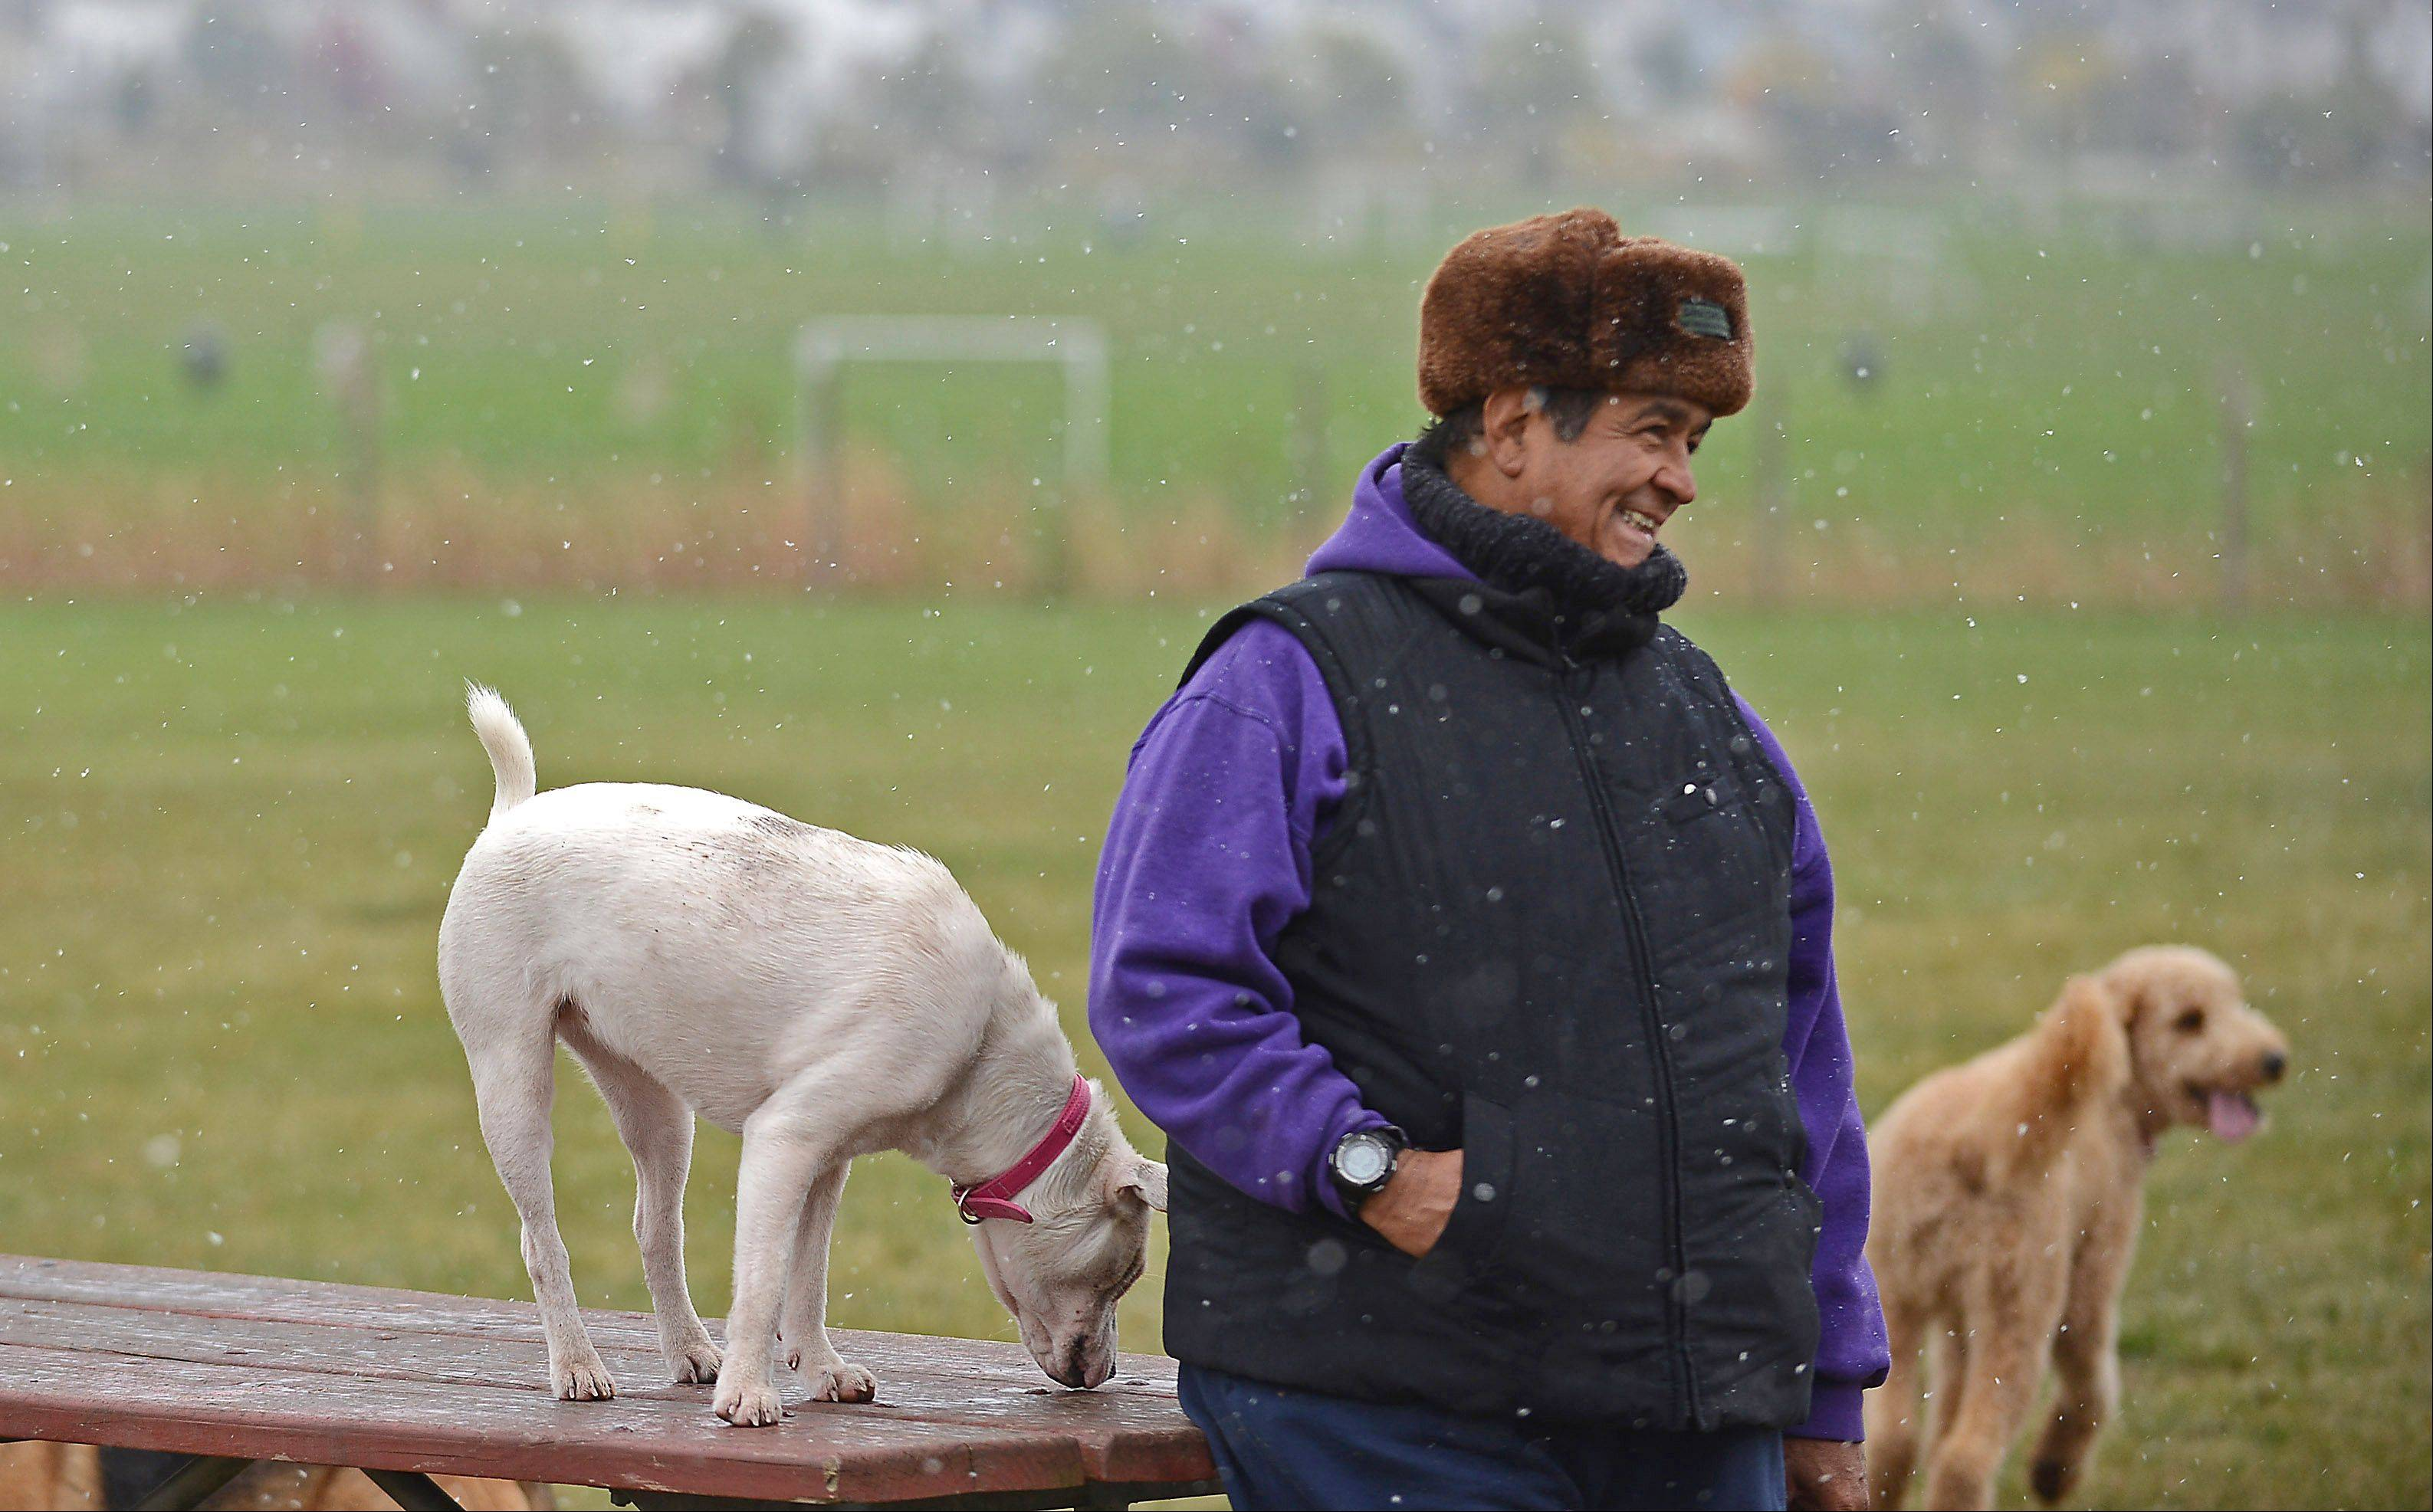 Manny Galvan of St. Charles smiles while talking to some of the other regulars at the dog park as the snow falls at James O. Breen Community Park Tuesday. He brought his dog Mimsy, not pictured, along.